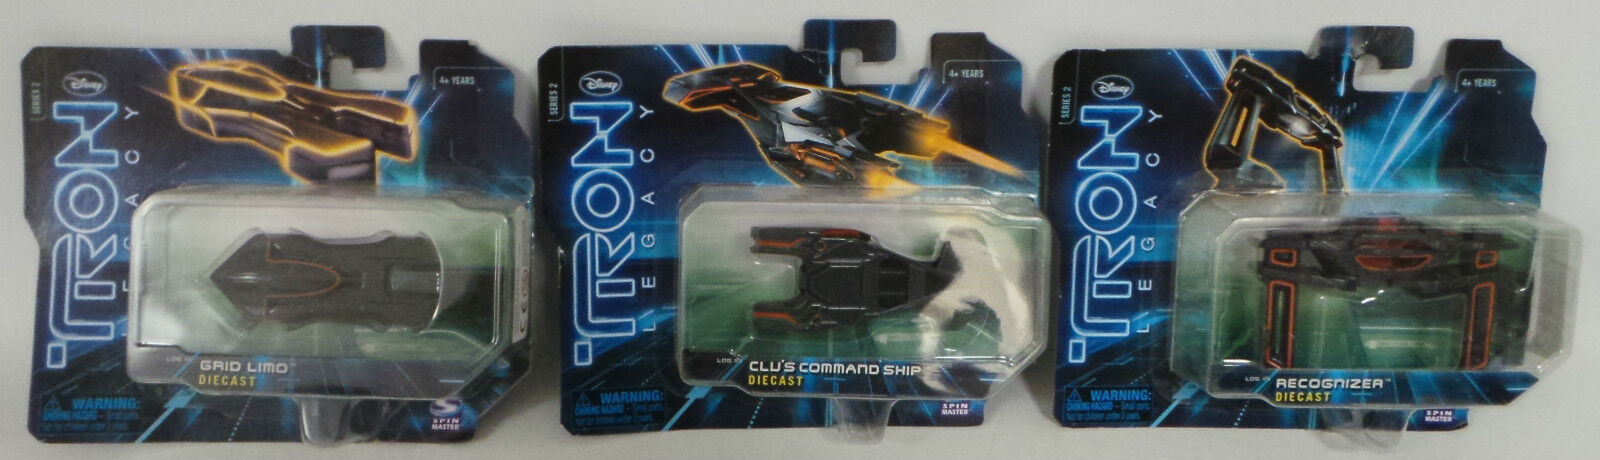 TRON LEGACY    3 VEHICLES   GRID LIMO, RECOGNIZER, CLU'S COMMAND SHIP (DEL)